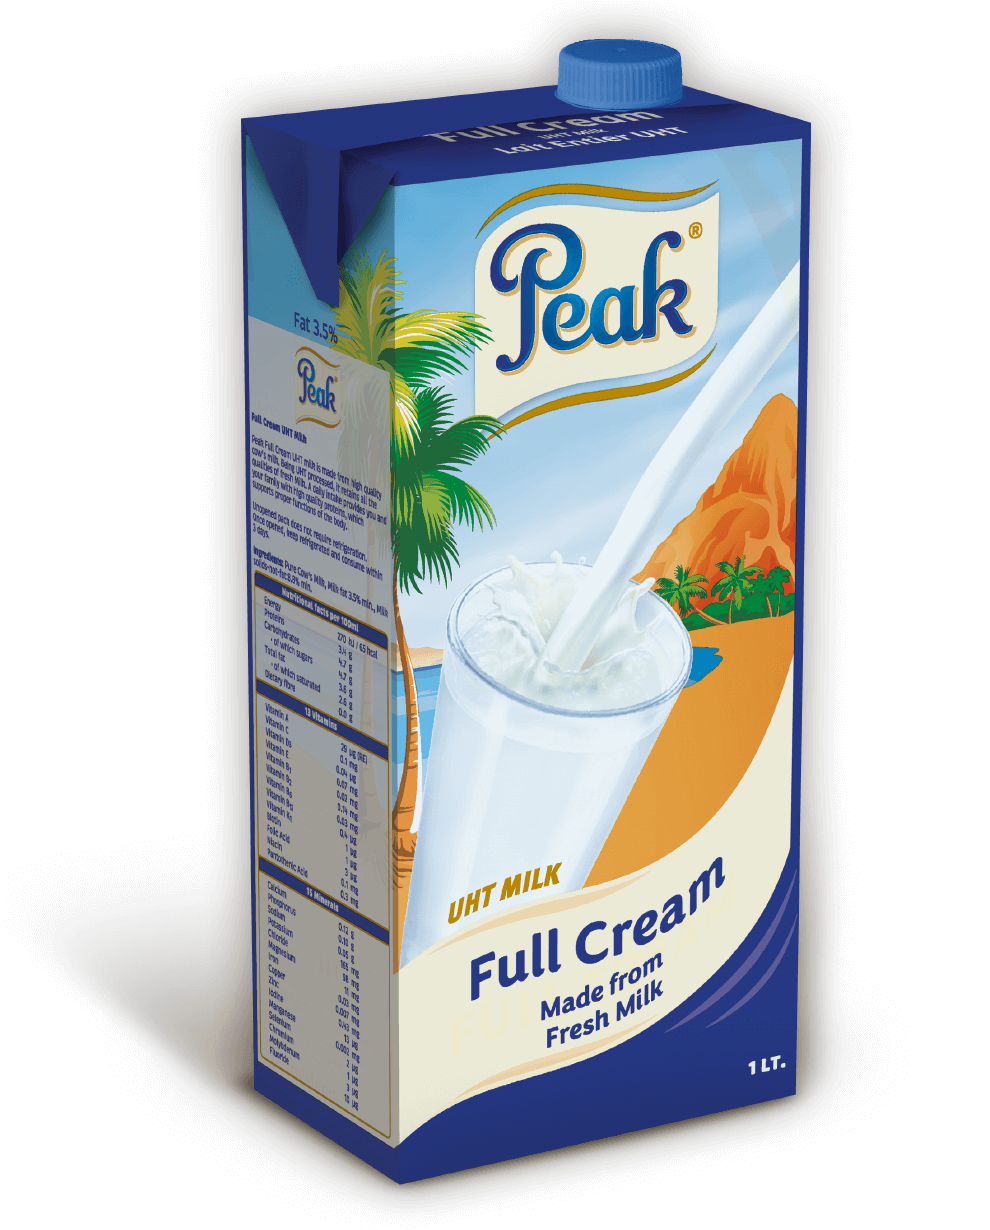 Peak UHT Milk Full Cream